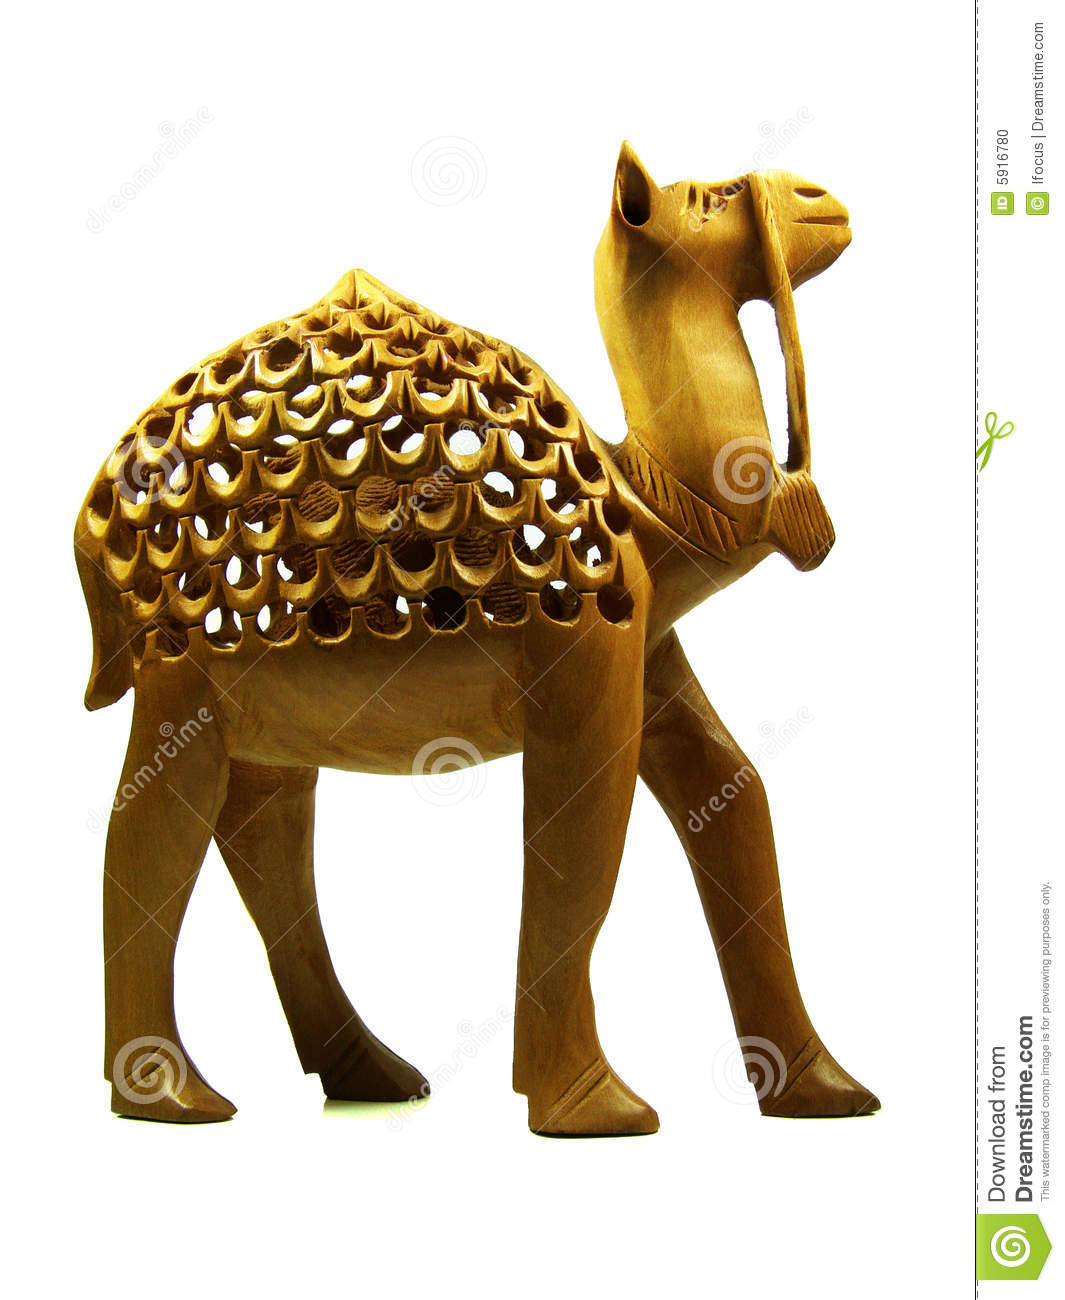 Carved camel statuette in wood